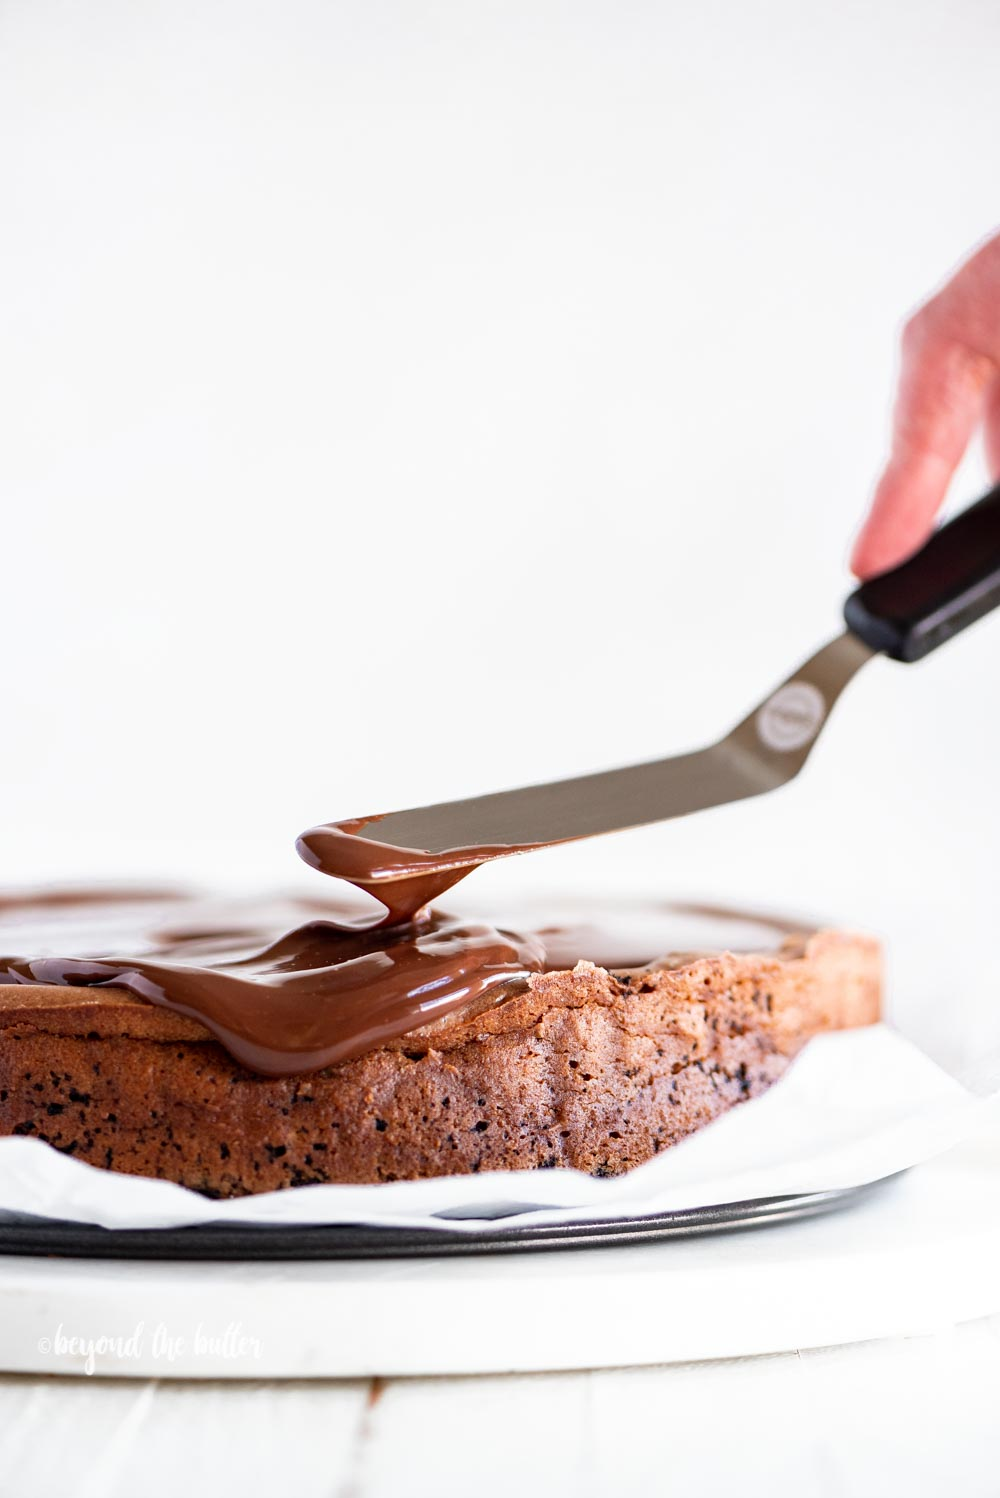 Using an offset spatula to spread out the dark chocolate ganache on top of the Triple Chocolate Mocha Cheesecake | All Images © Beyond the Butter, LLC